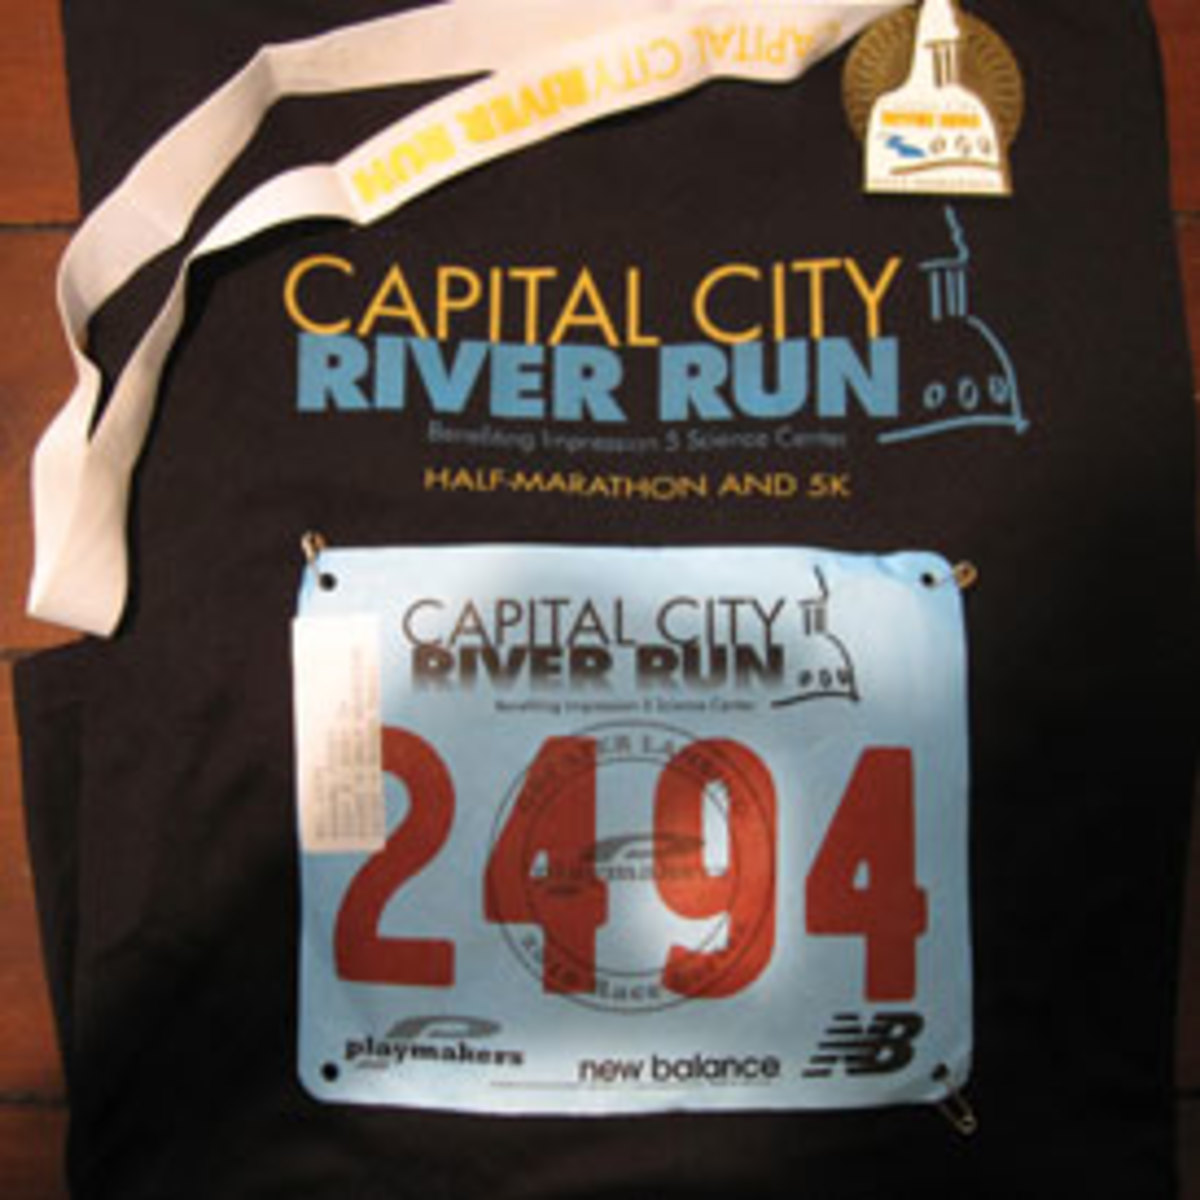 My first bib.